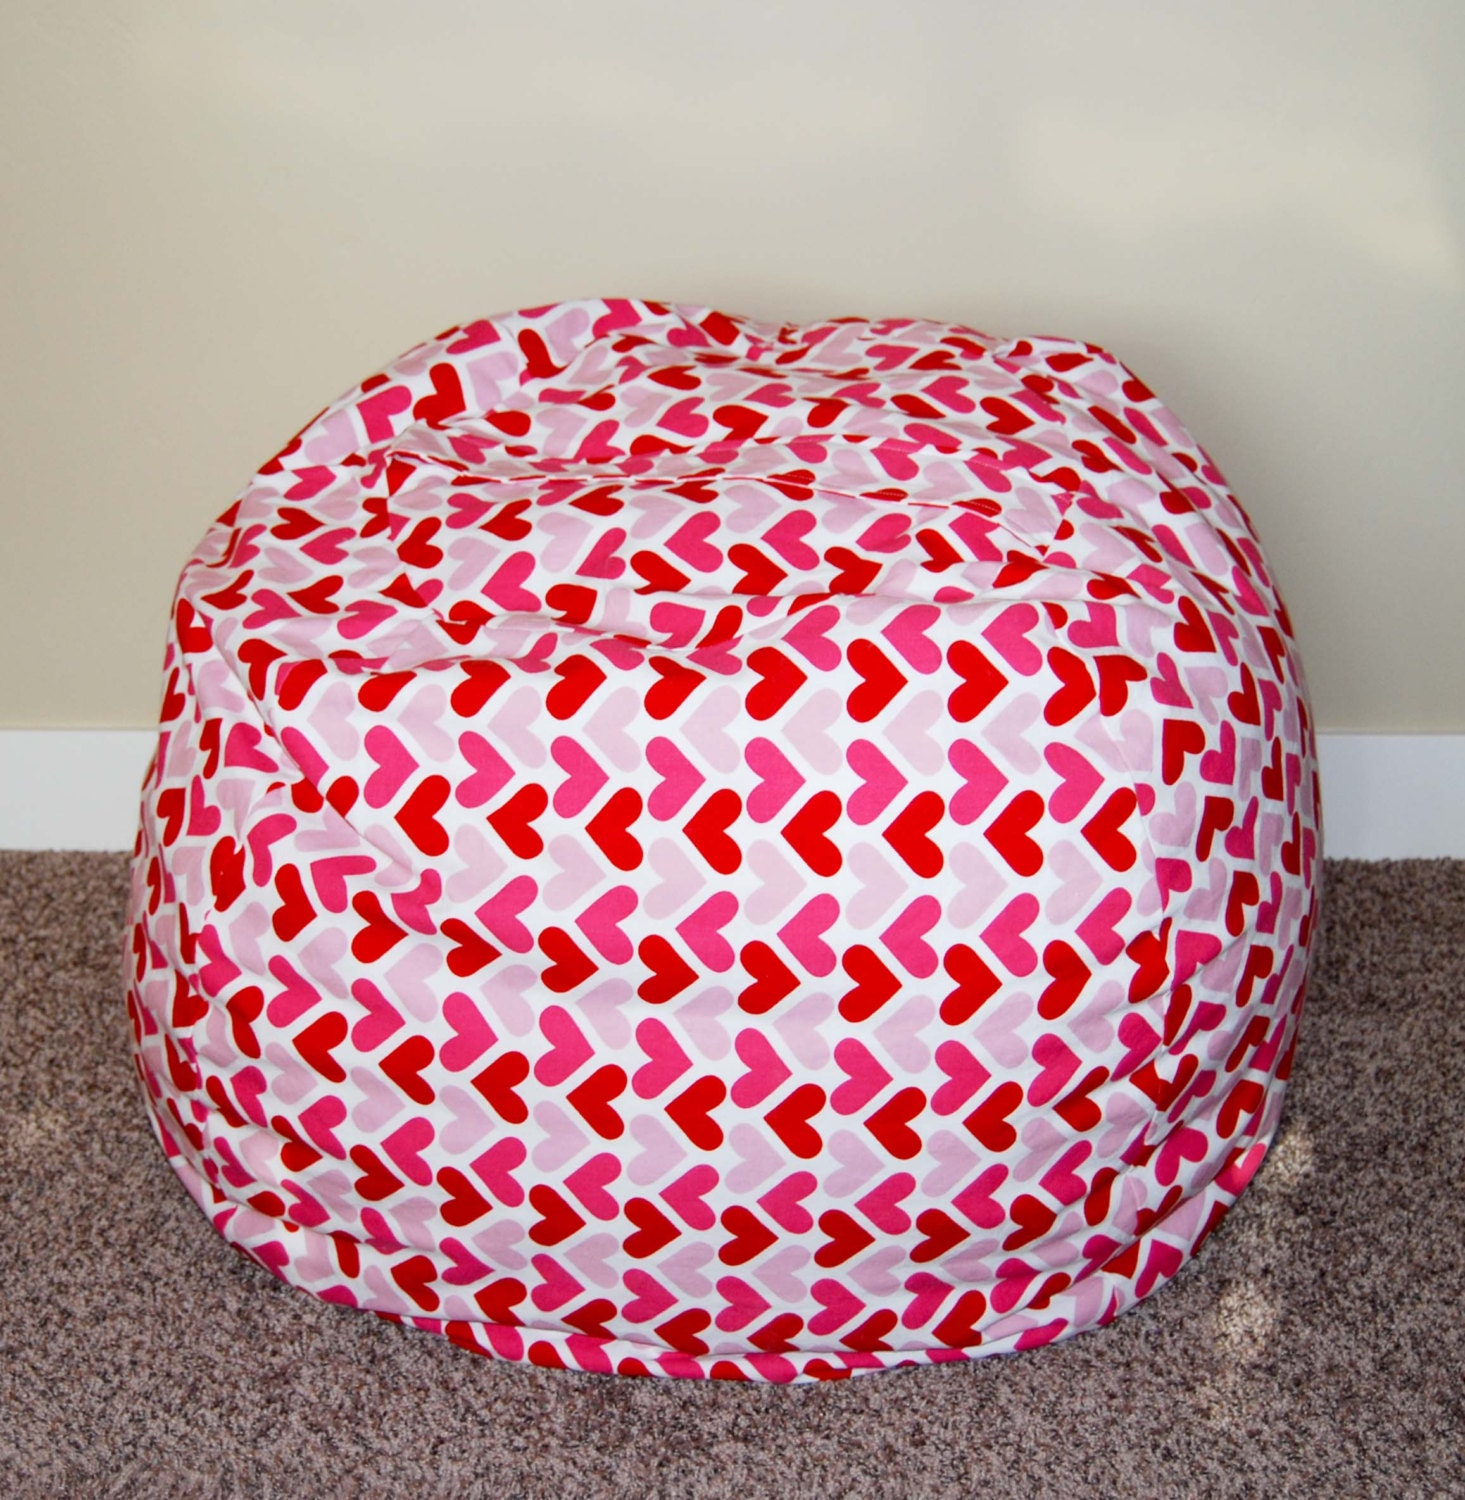 Custom Rollie Pollie Bean Bag UNFILLED